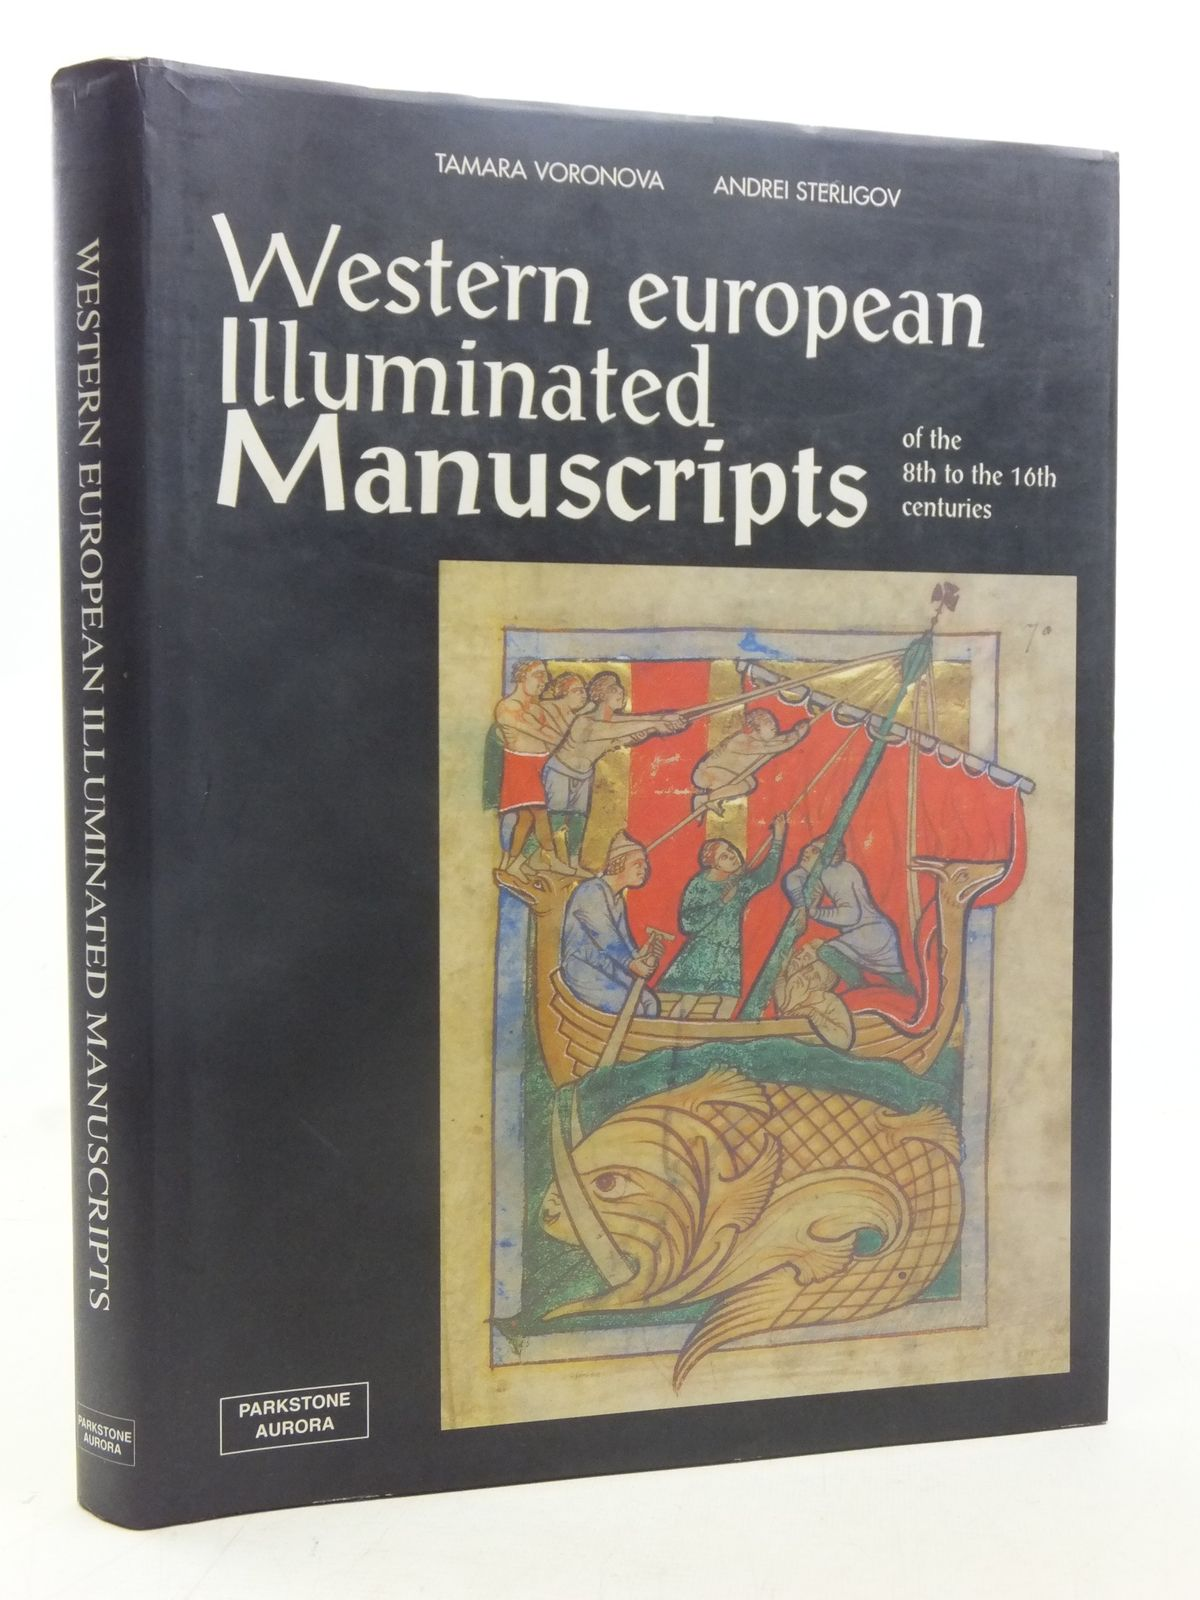 Photo of WESTERN EUROPEAN ILLUMINATED MANUSCRIPTS OF THE 8TH TO THE 16TH CENTURIES written by Voronova, Tamara<br />Sterligov, Alexander published by Parkstone Press (STOCK CODE: 2117320)  for sale by Stella & Rose's Books